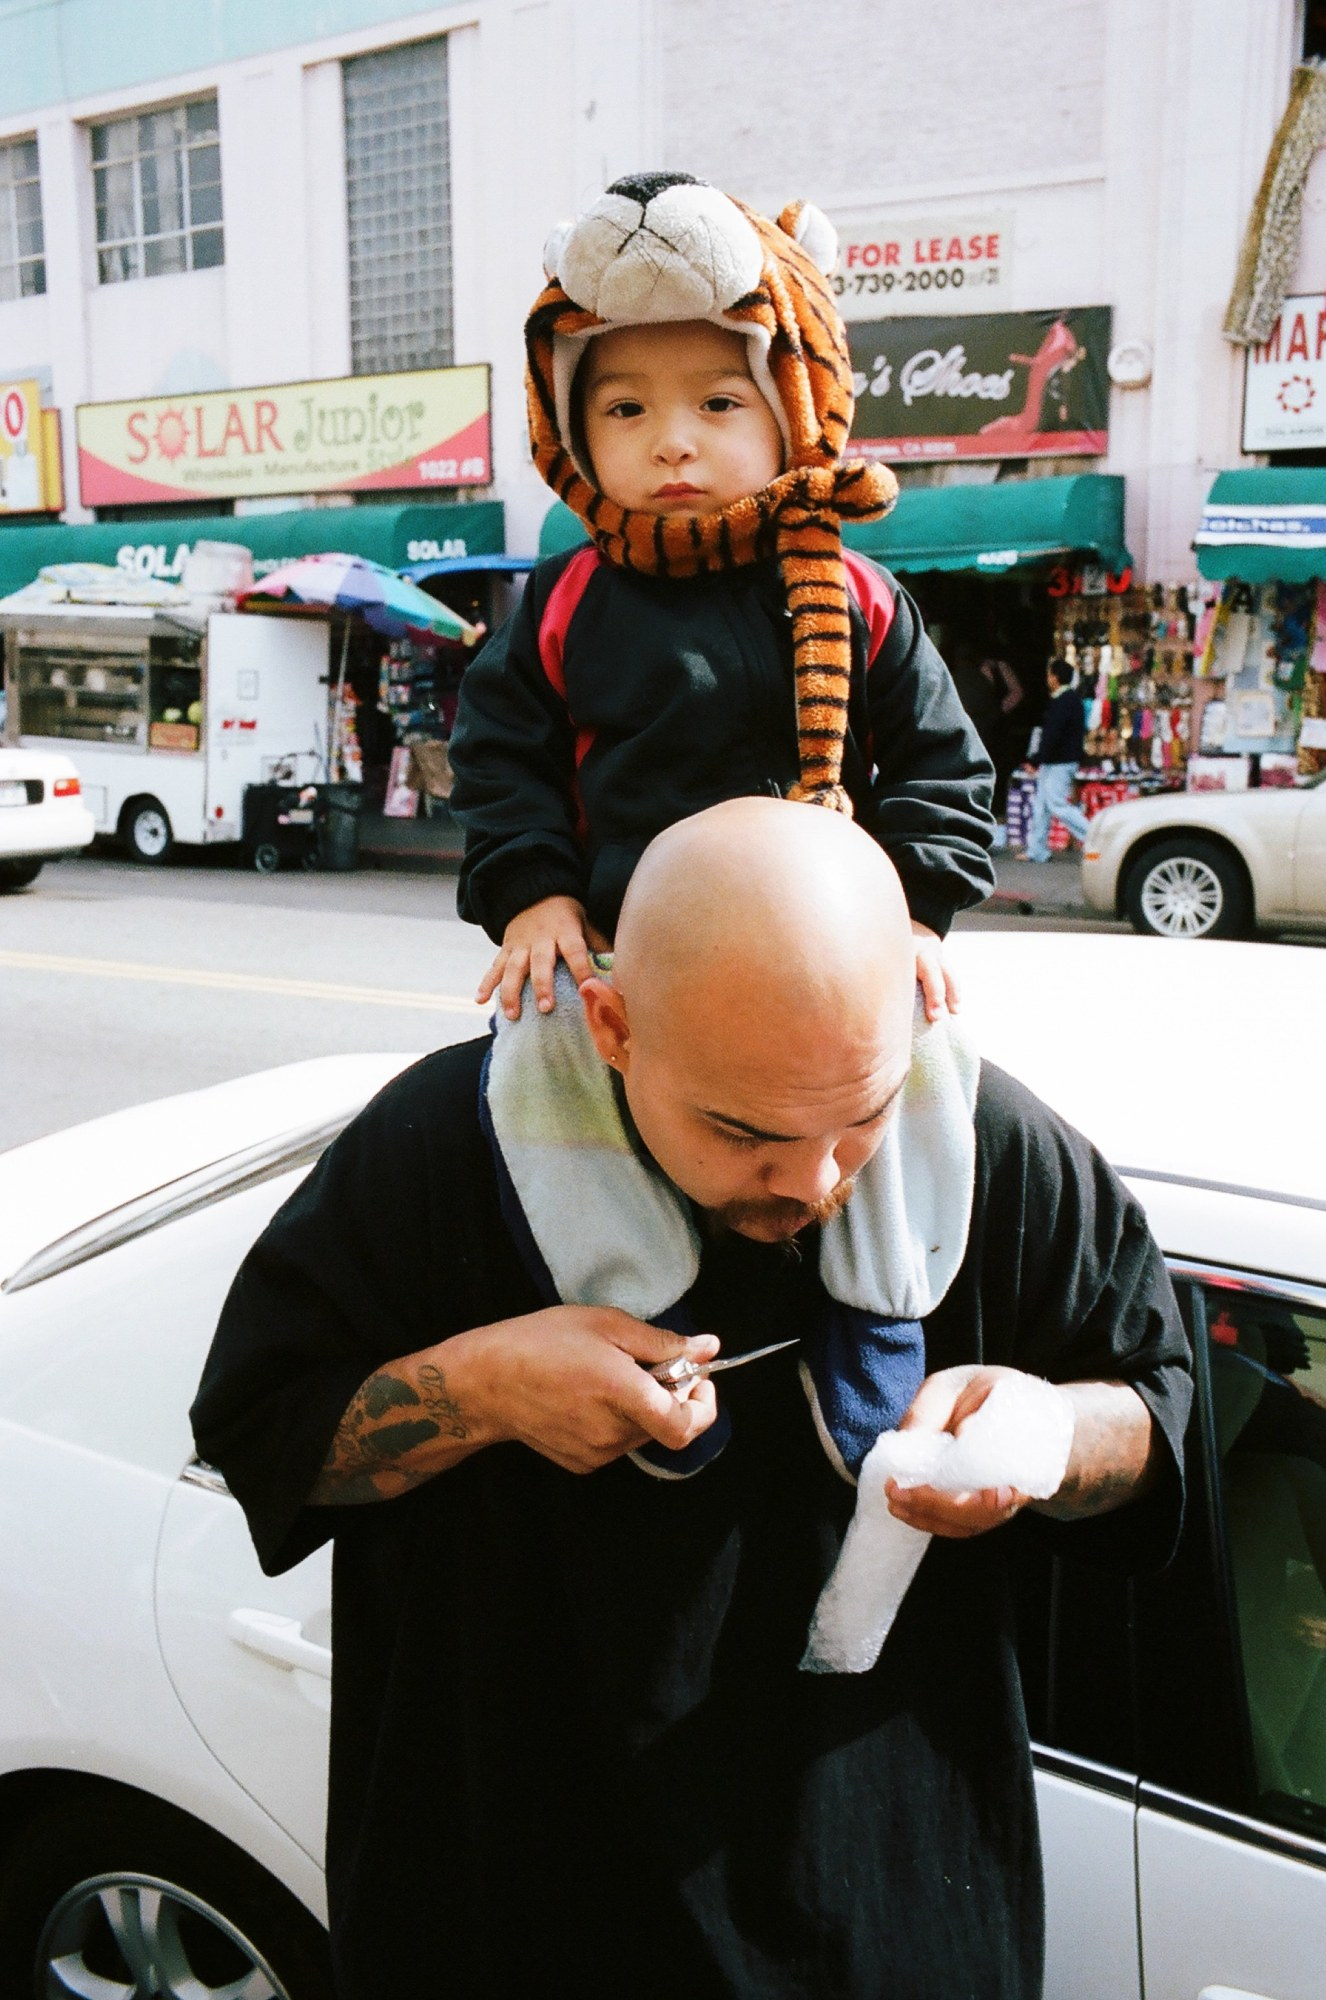 Boy and father. Leica M6, Kodak Portra 400, 35mm, around 1.8 meters.